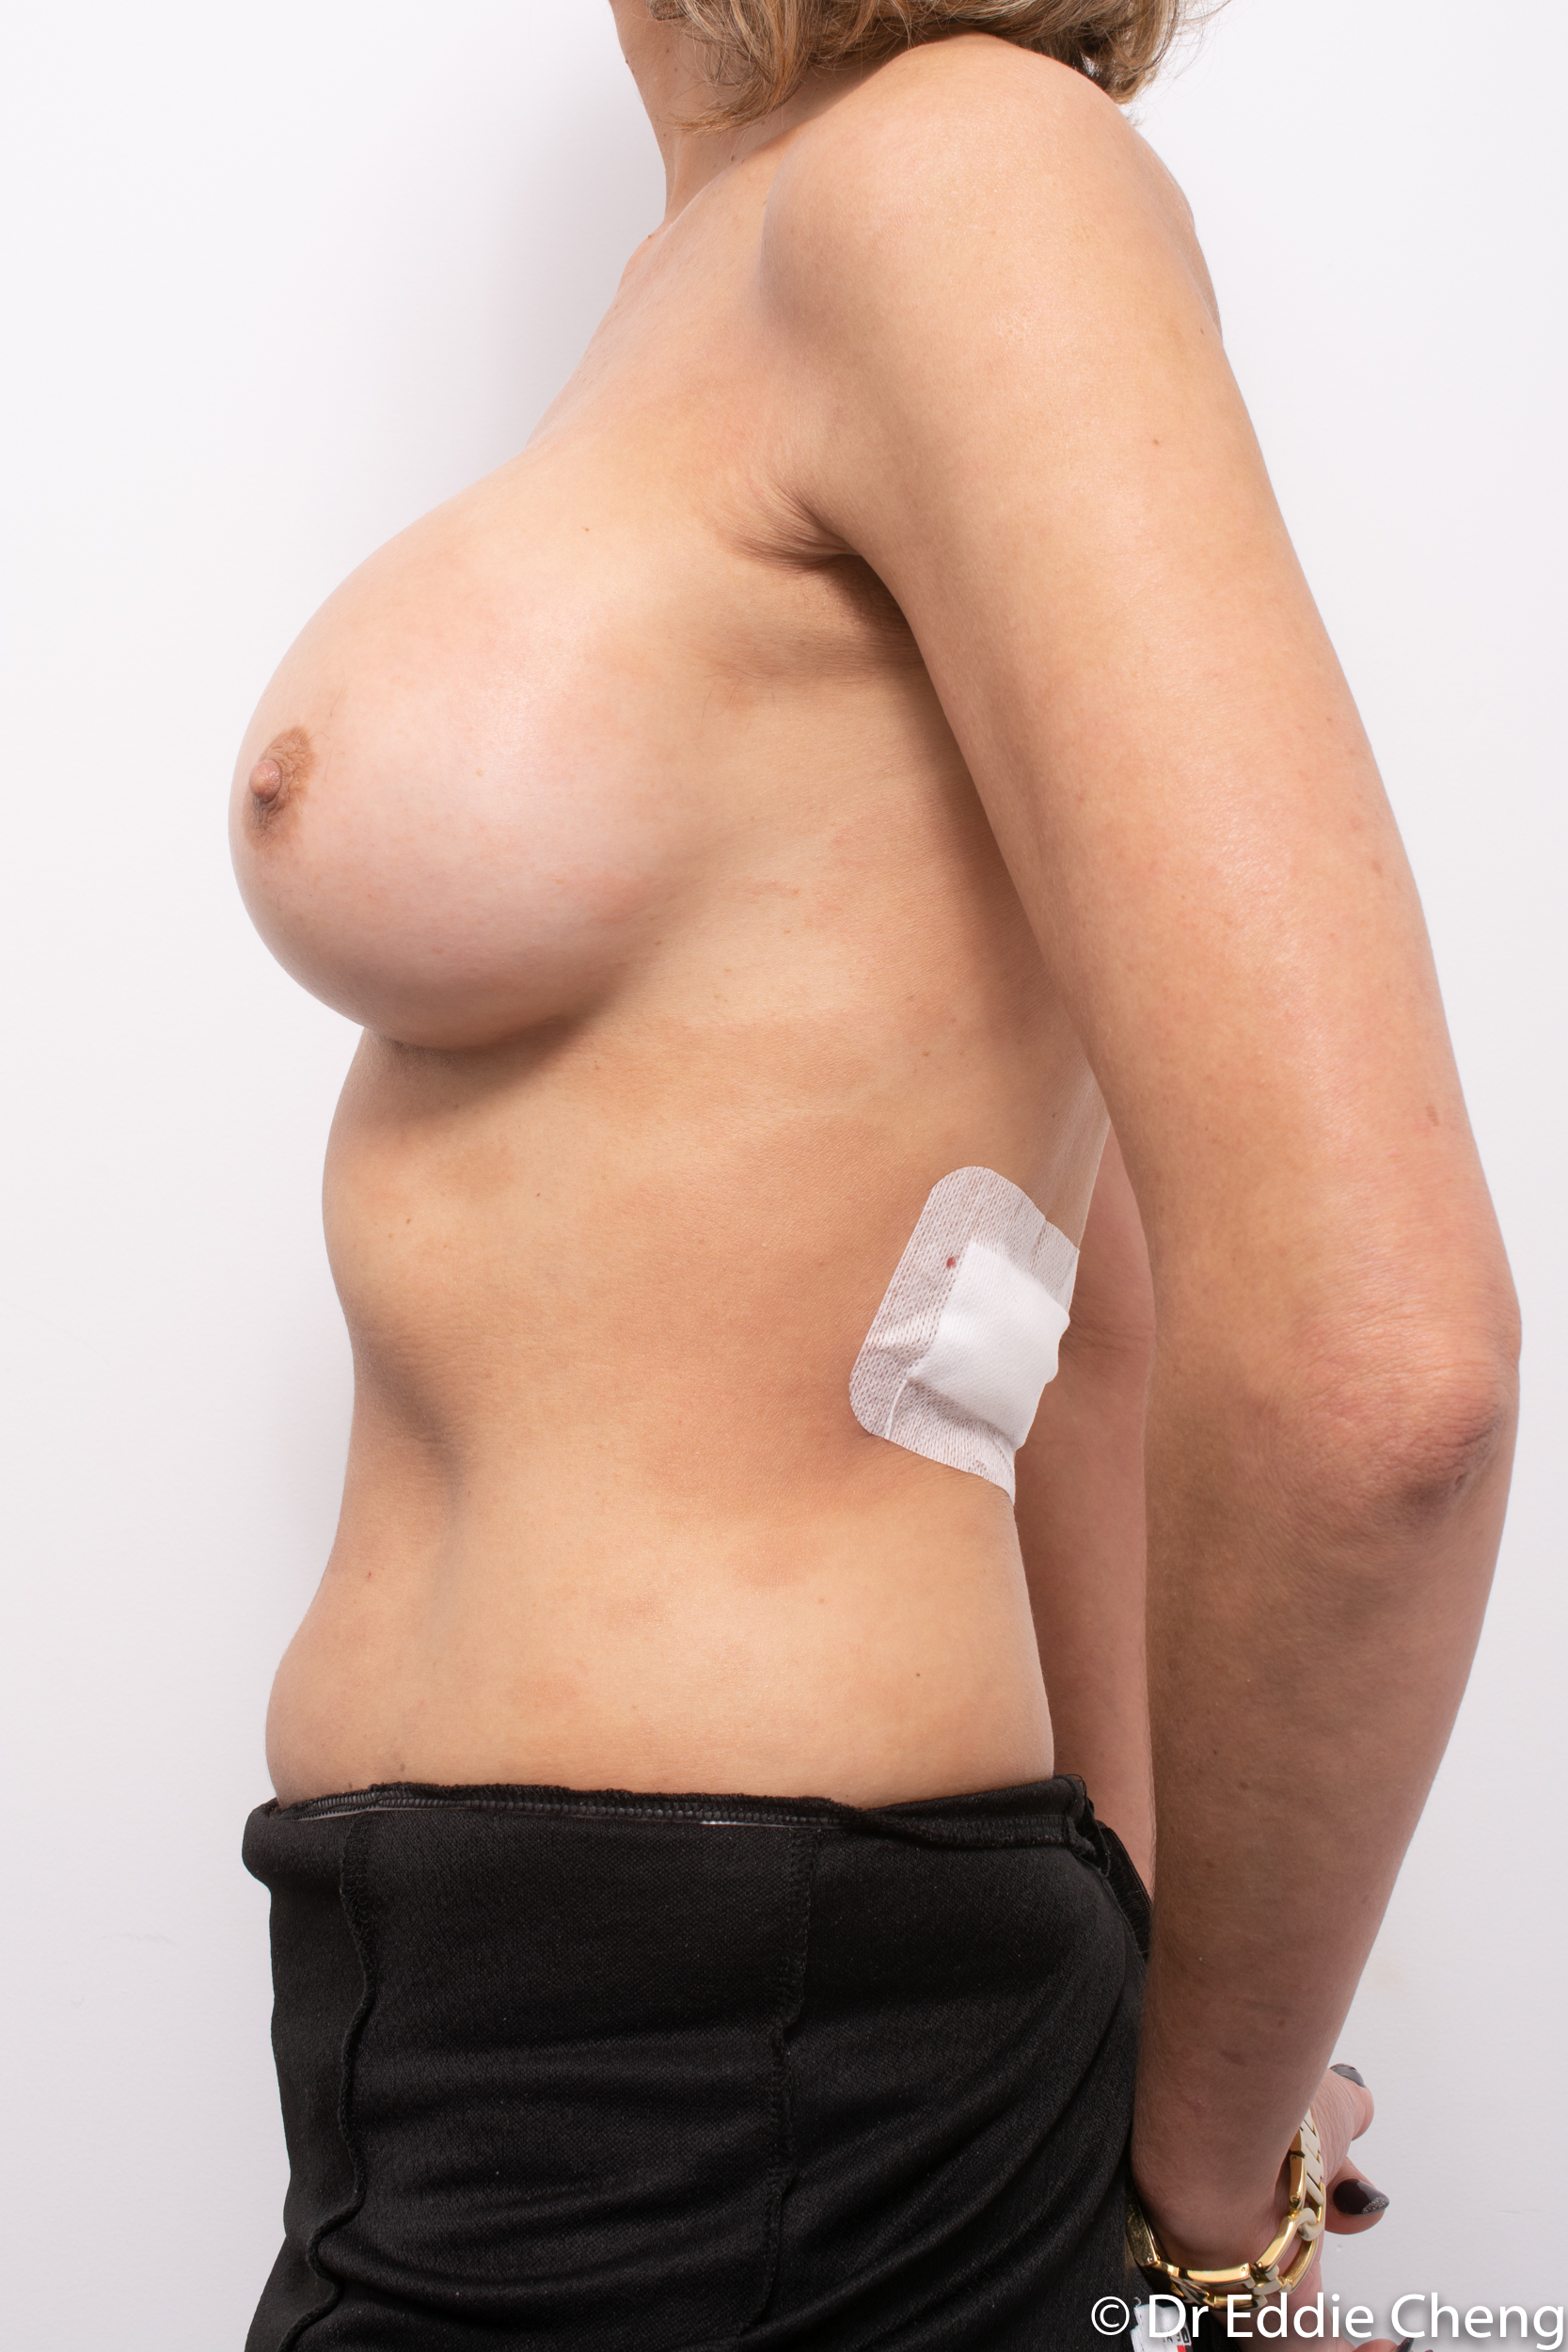 breast implant removal or explant by dr eddie cheng brisbane-5